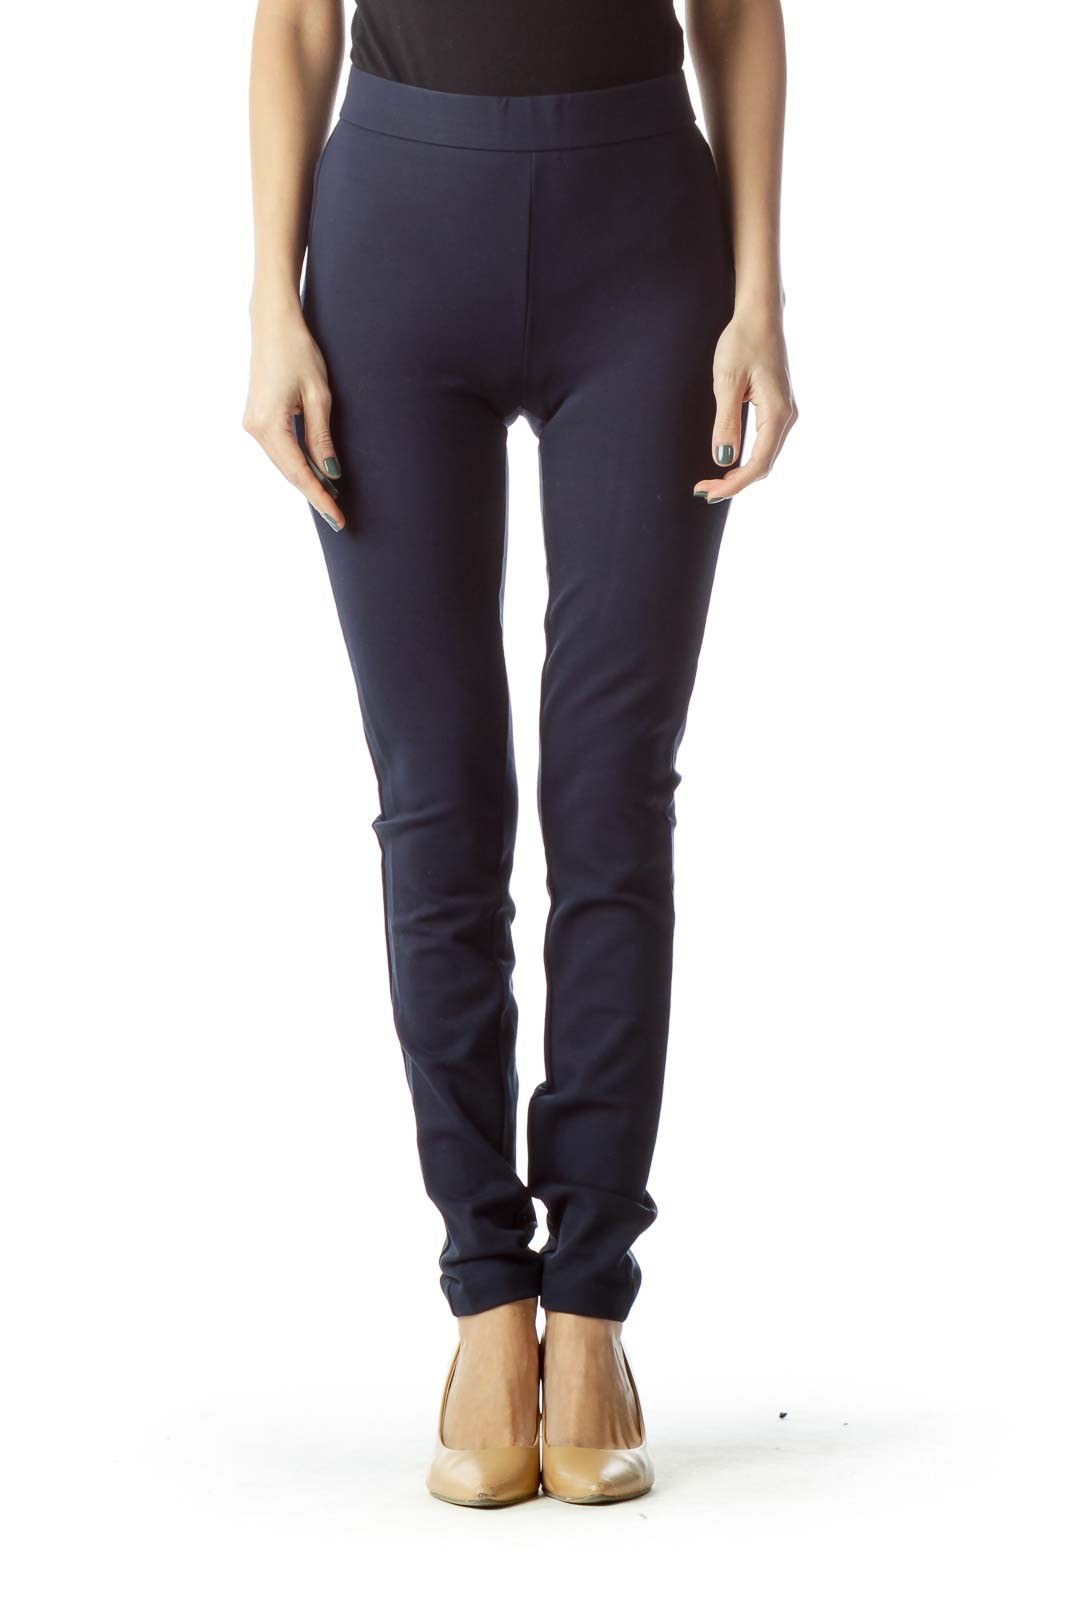 Navy Tall Work Legging